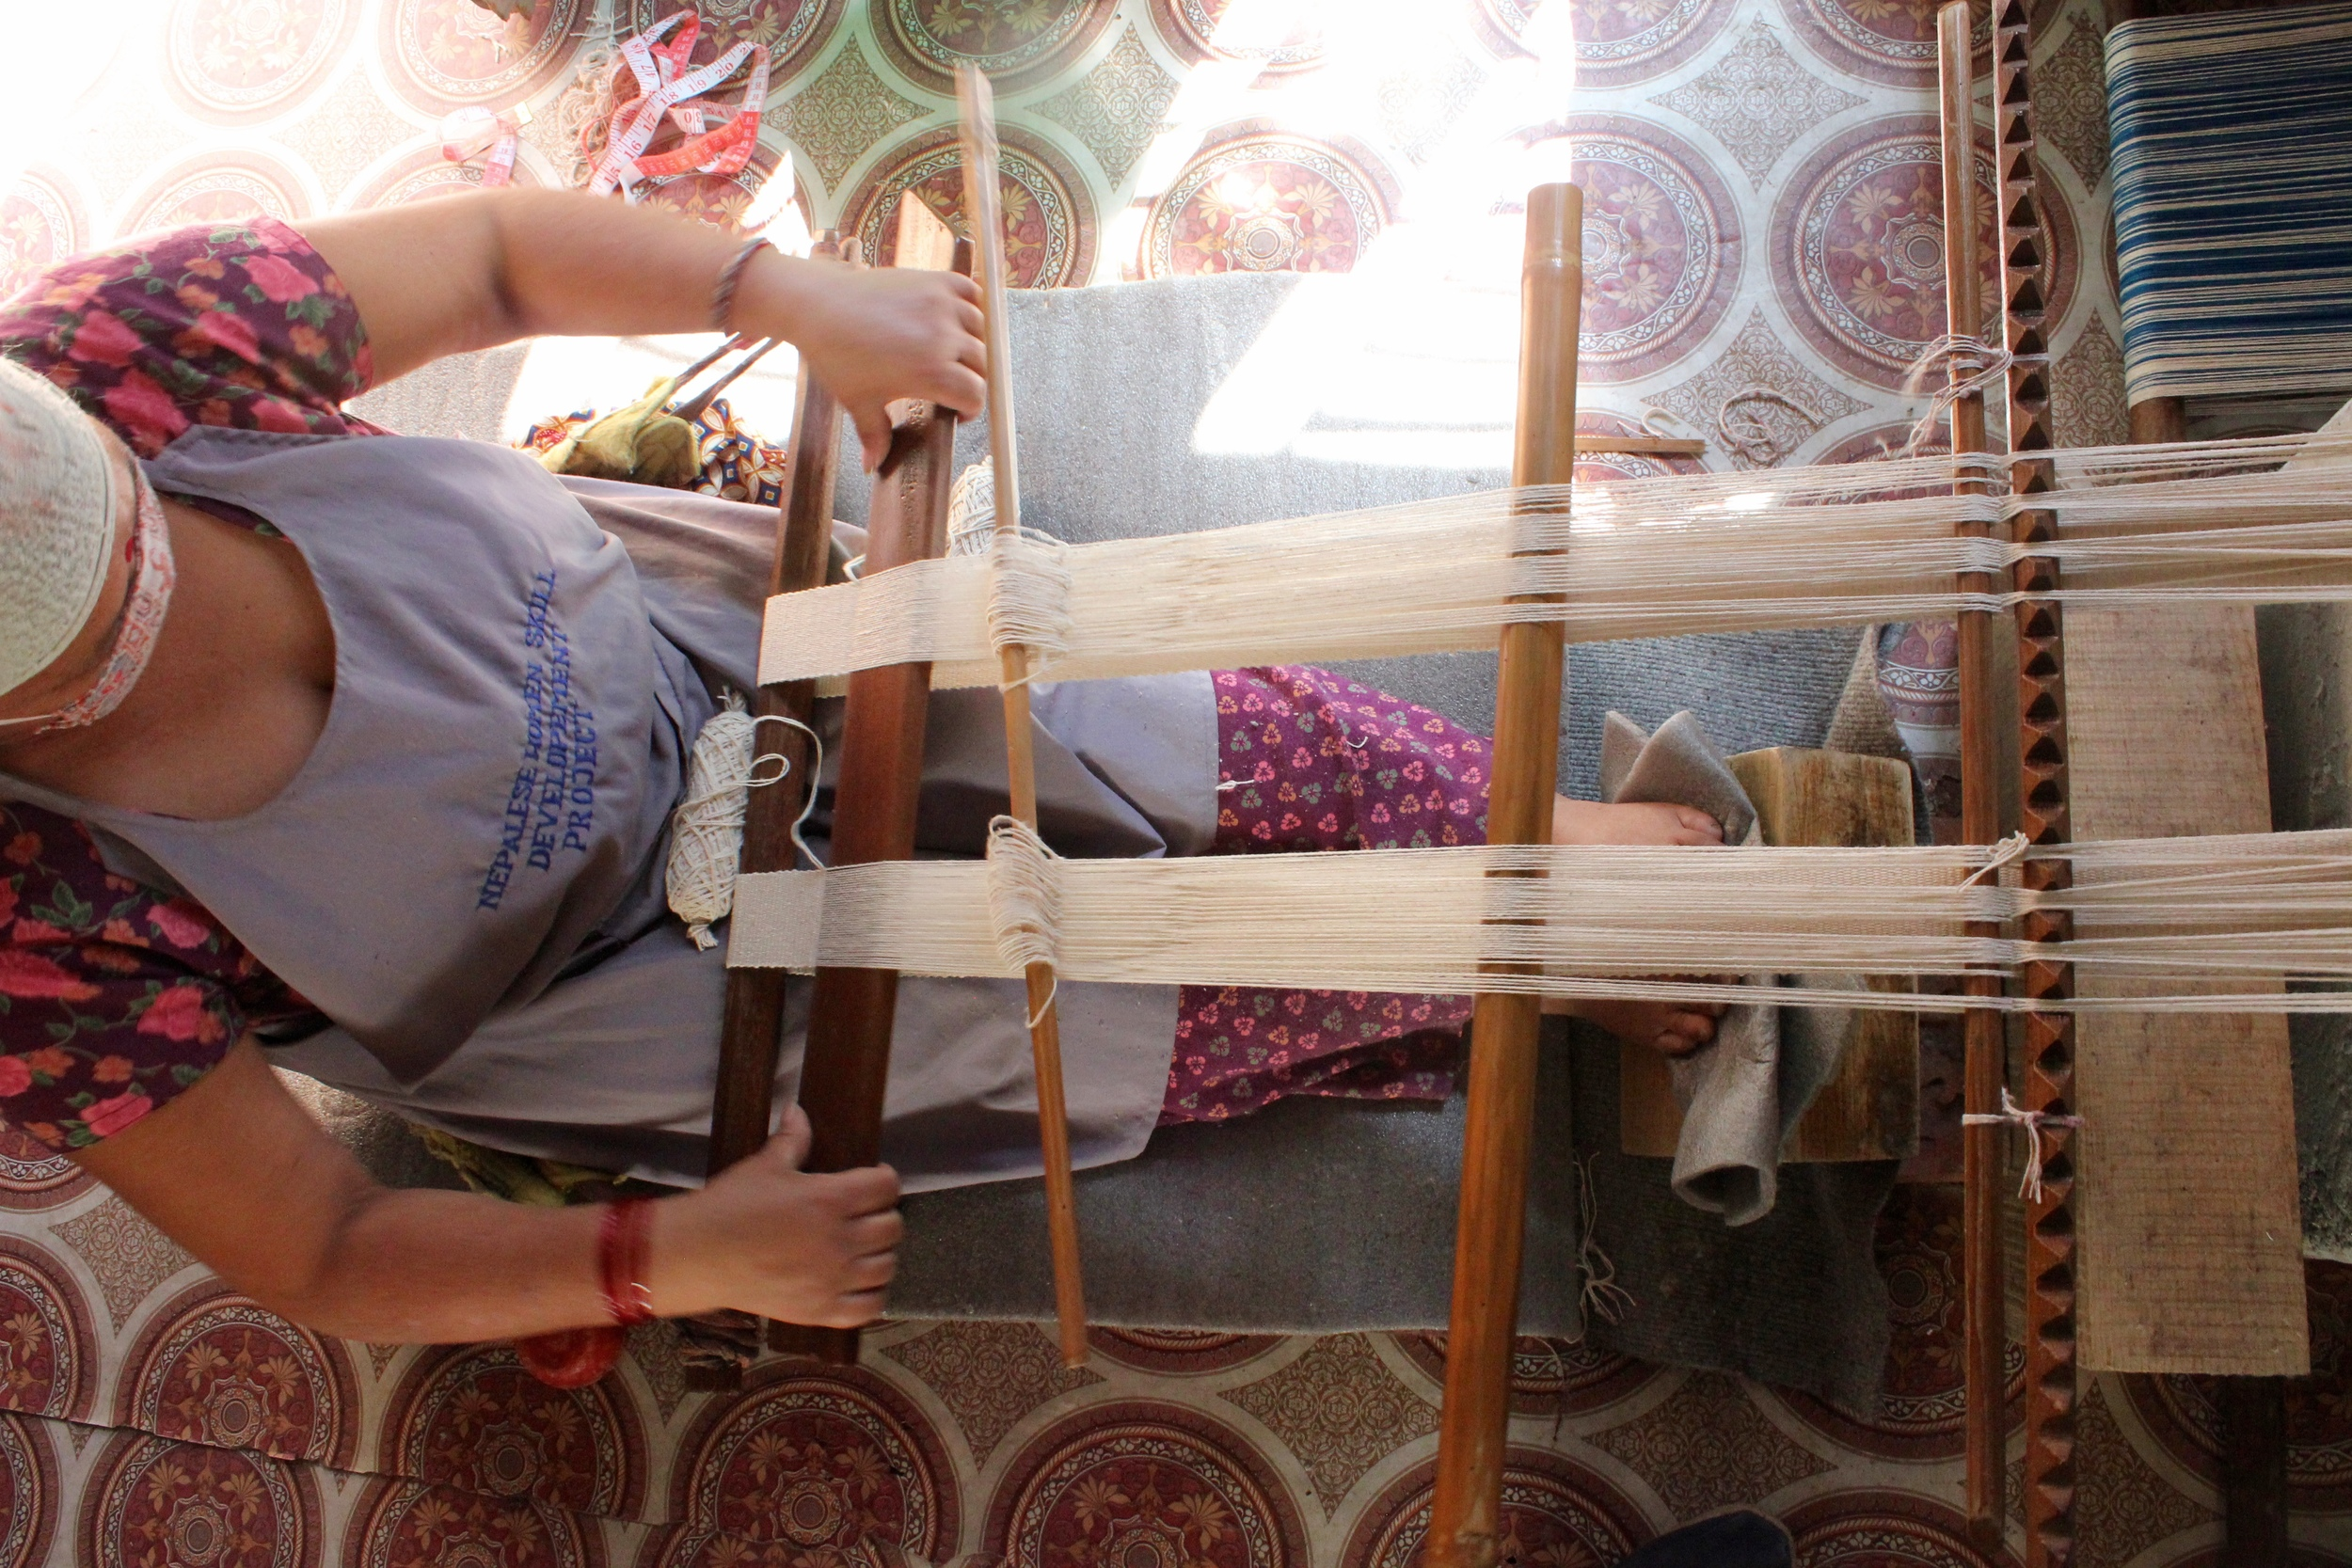 Yam Sari weaving on a traditional back strap loom in Nepal. It can take up to a week to create one table runner on a loom just like this one!